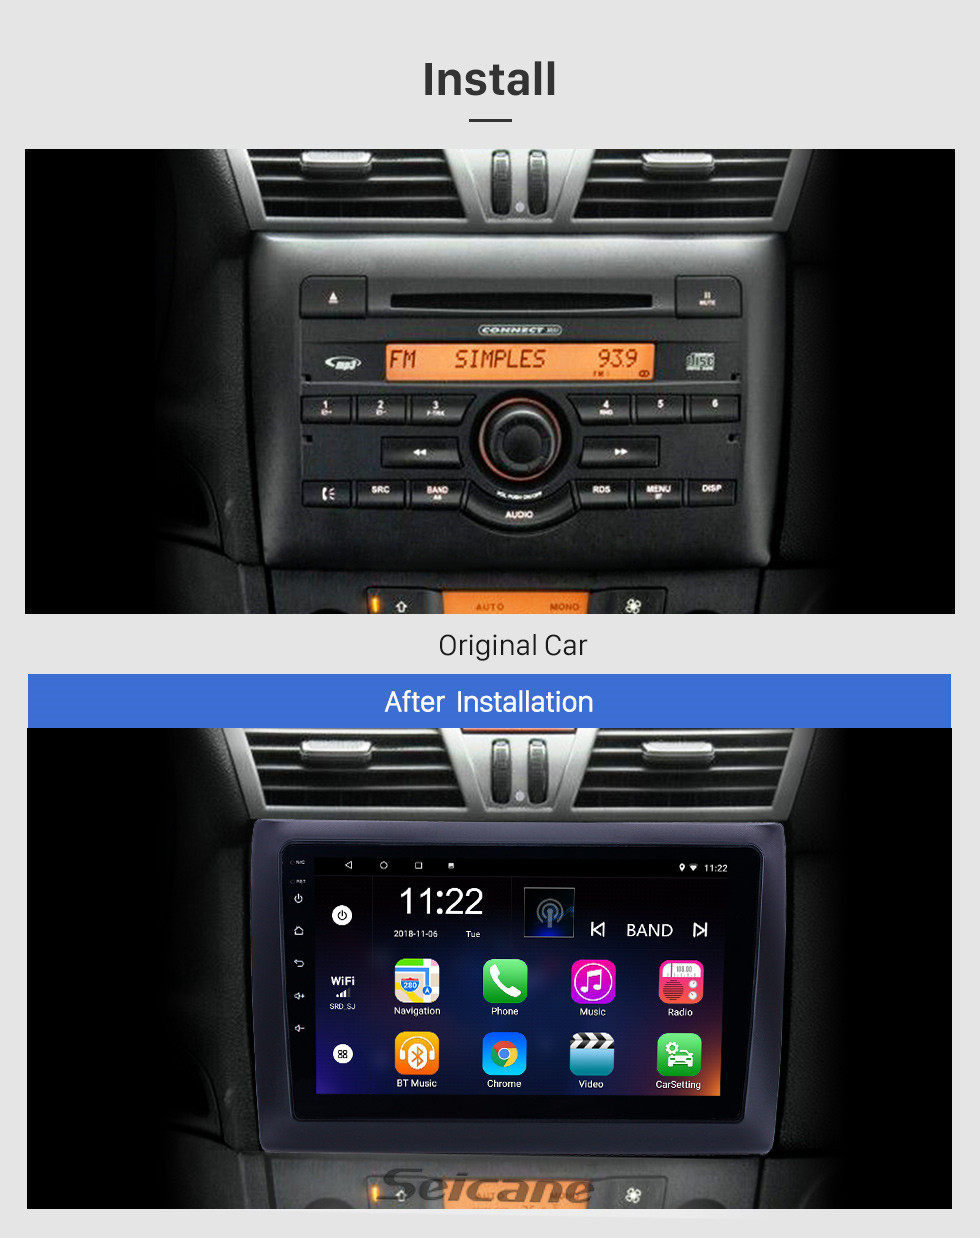 Seicane 2010 Fiat Stilo Android 10.0 HD Touchscreen 9 inch AUX Bluetooth WIFI USB GPS Navigation Radio support OBD2 SWC Carplay DVR